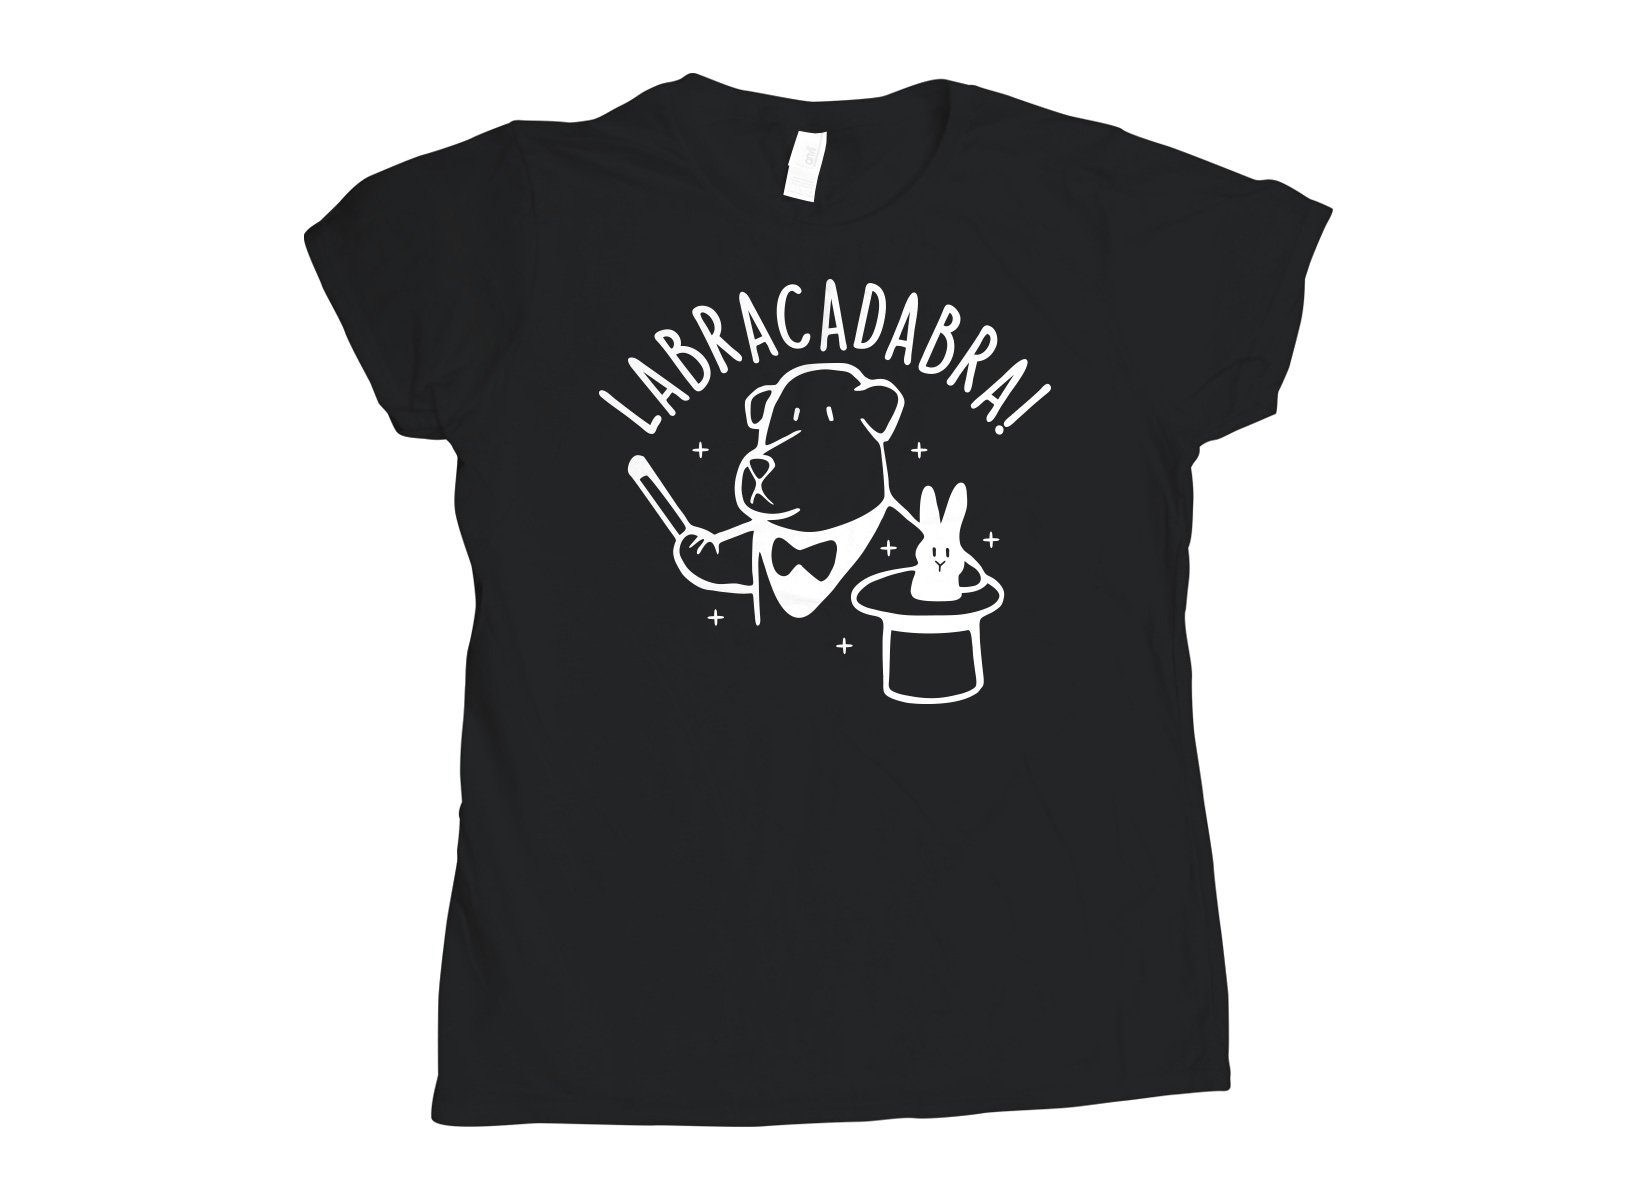 Labracadabra on Womens T-Shirt